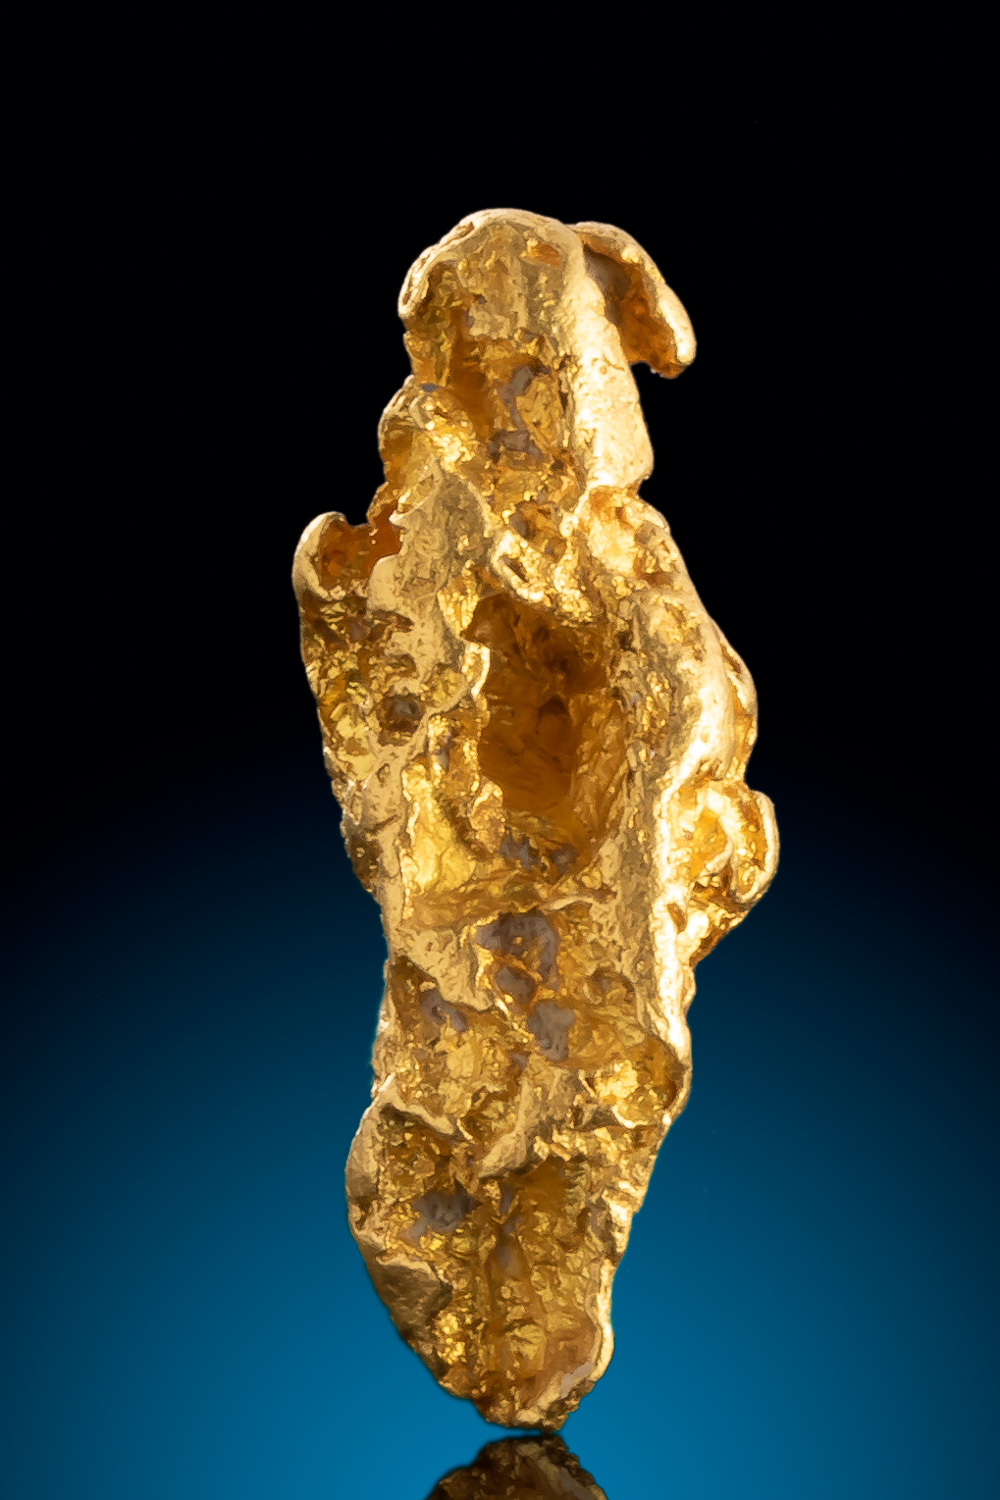 Elongated Textured Natural Gold Nugget from Alaska